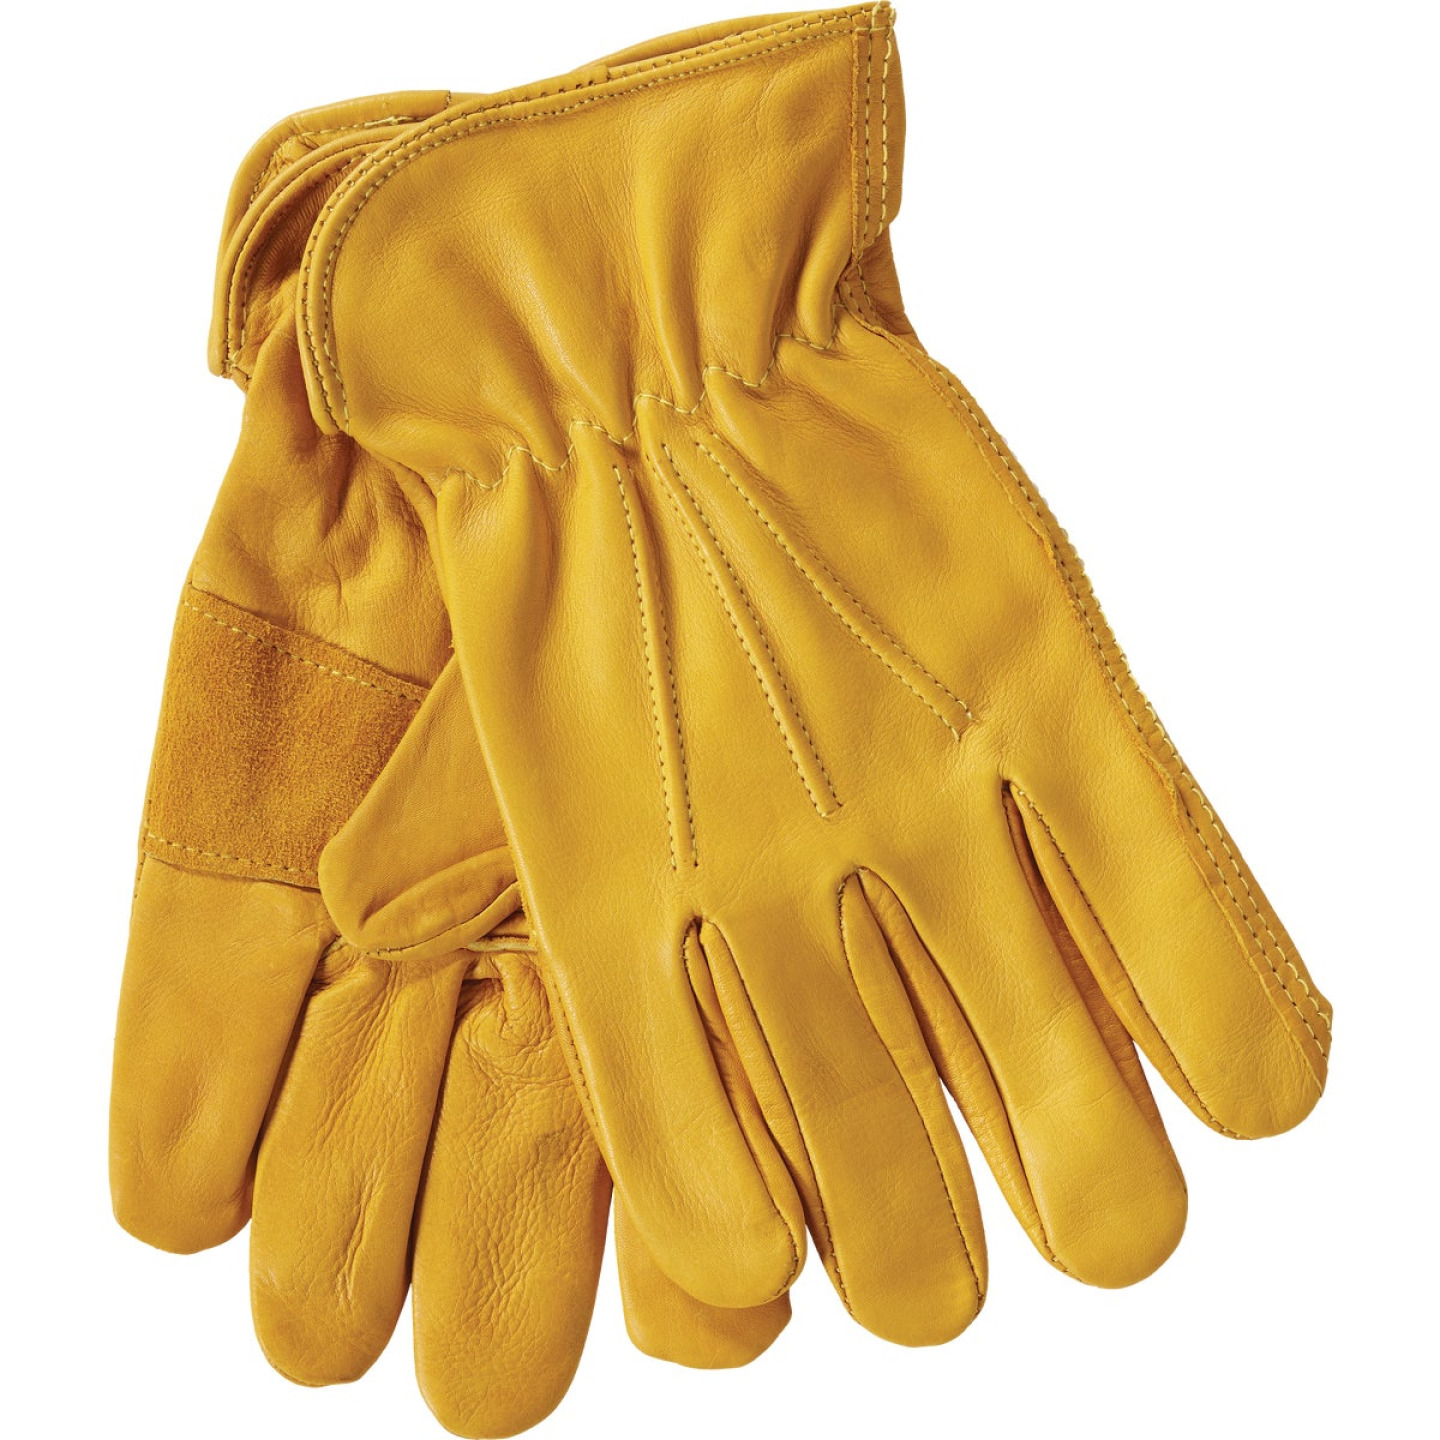 West Chester Protective Gear Men's XL Grain Cowhide Leather Work Glove Image 1